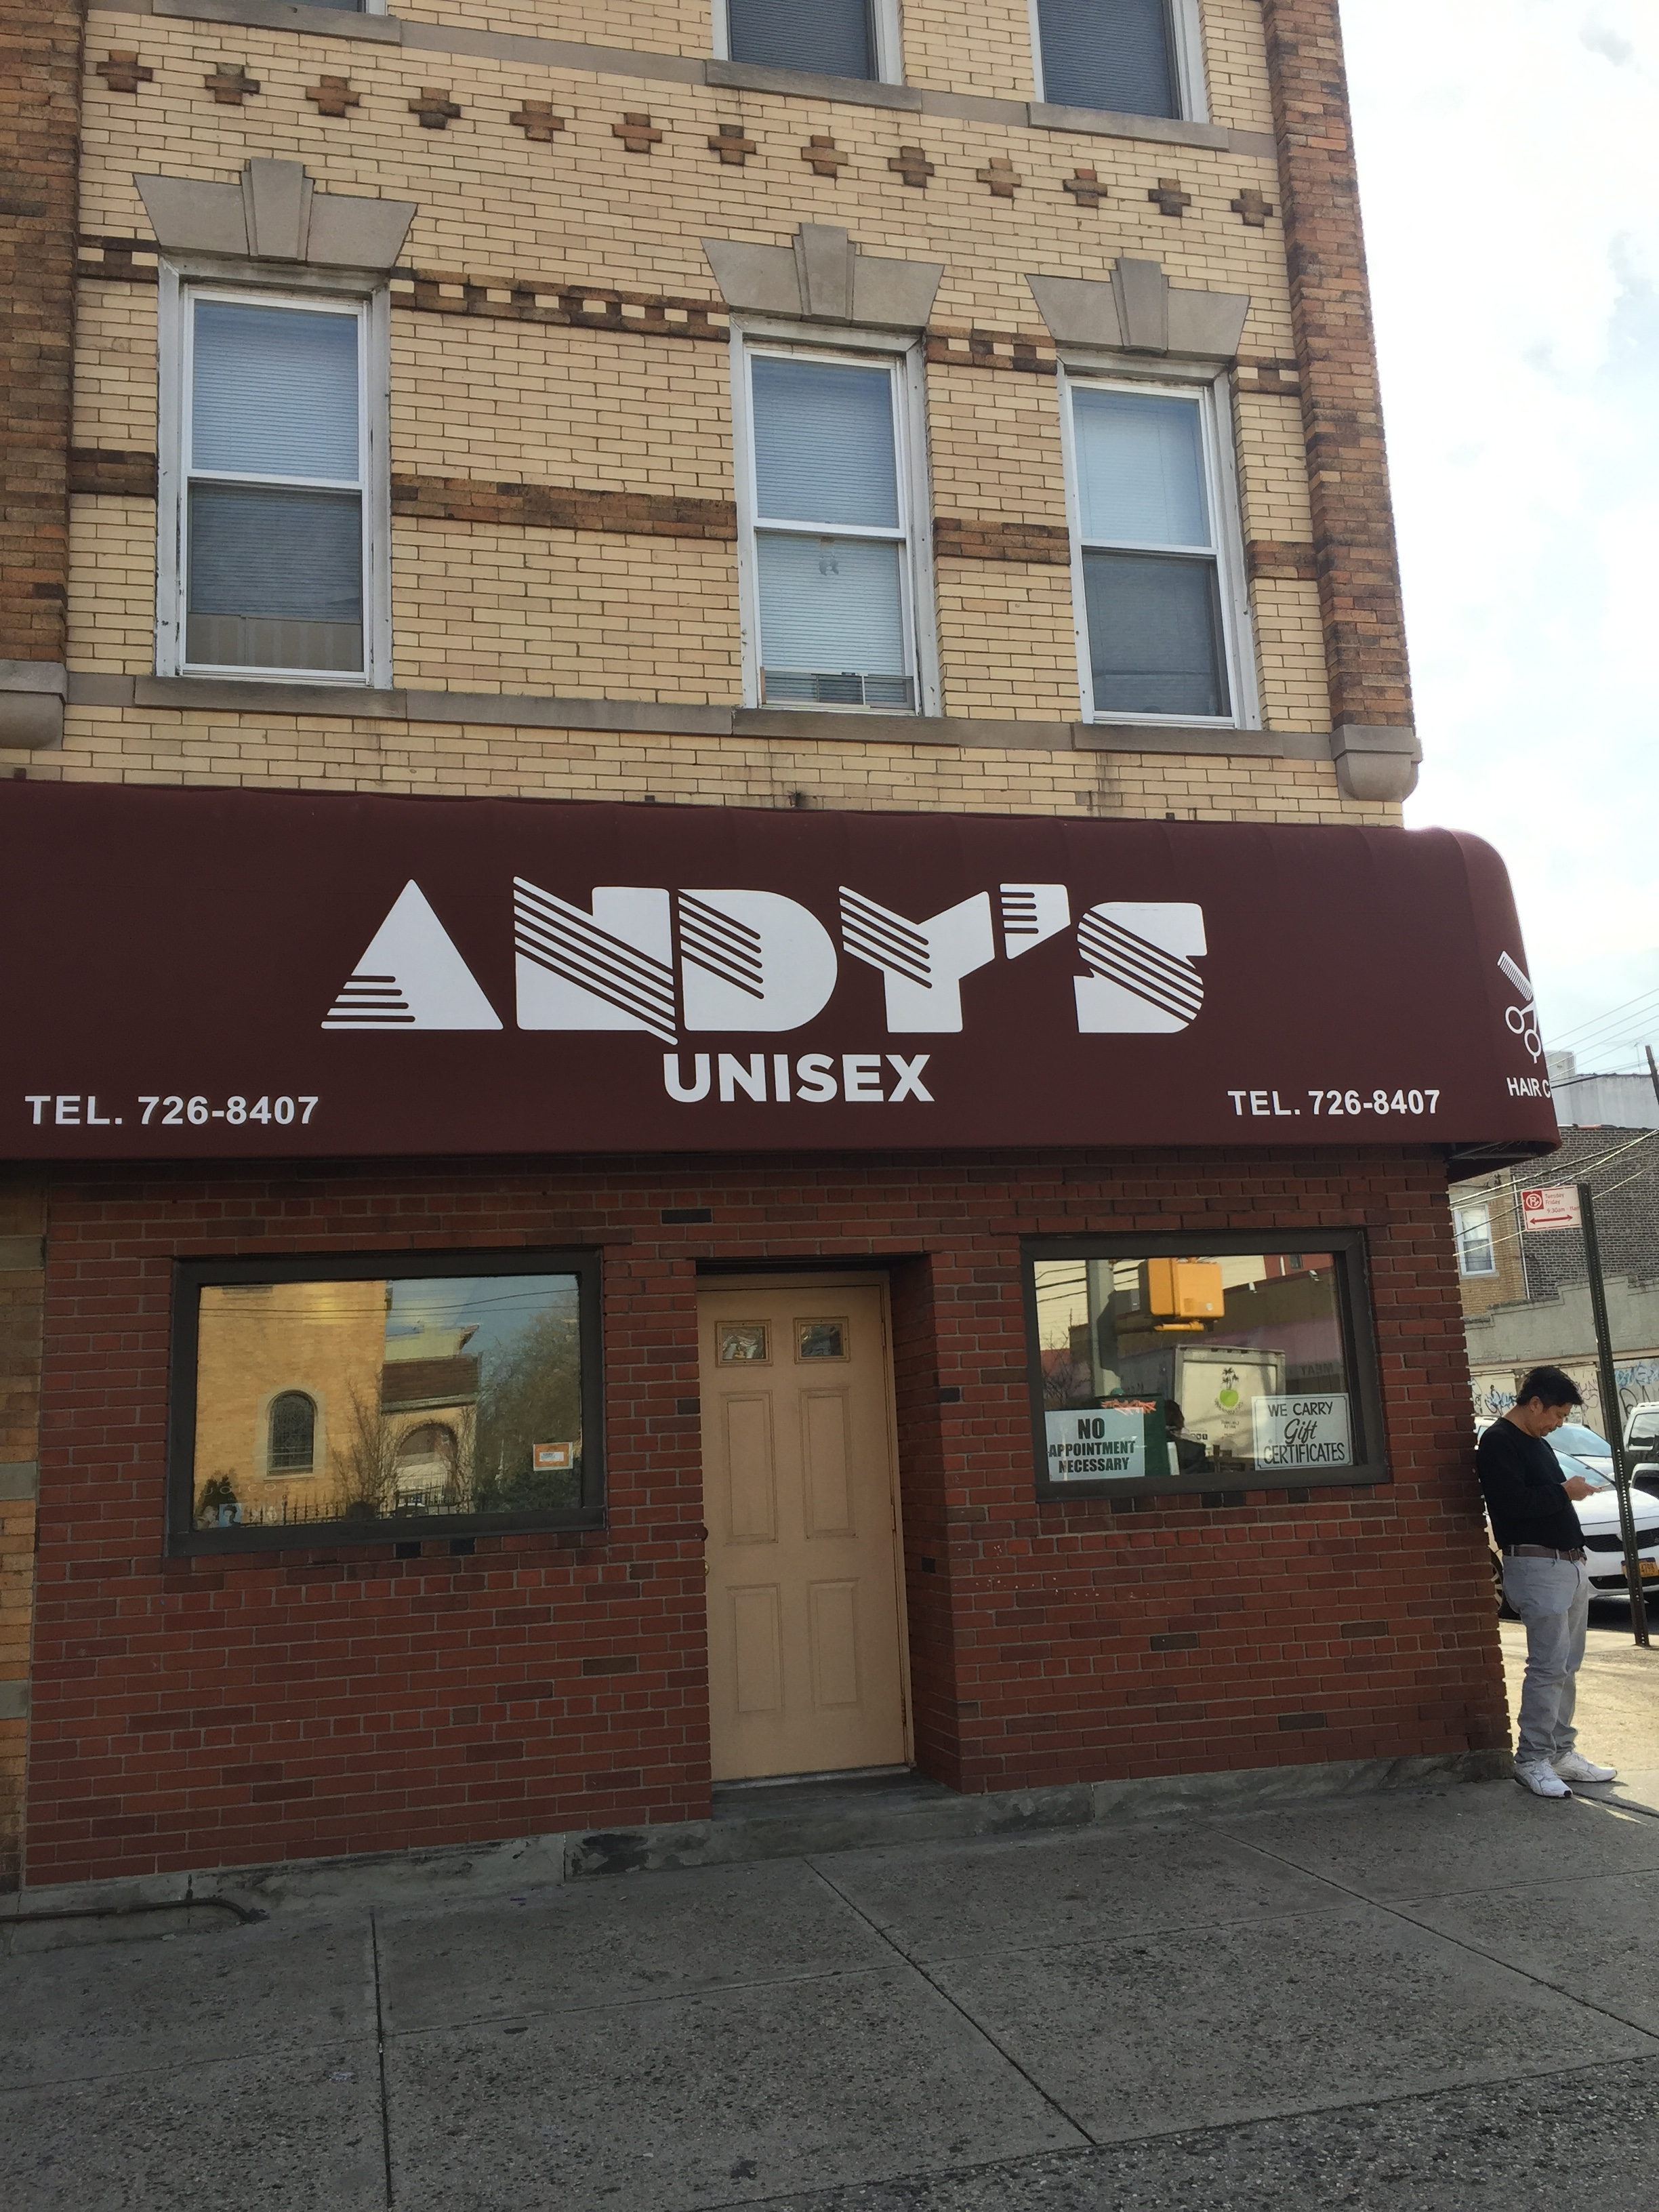 ANDY UNISEX HAIR SALON in East Astoria, NY, meet the OWNER Andi Messina